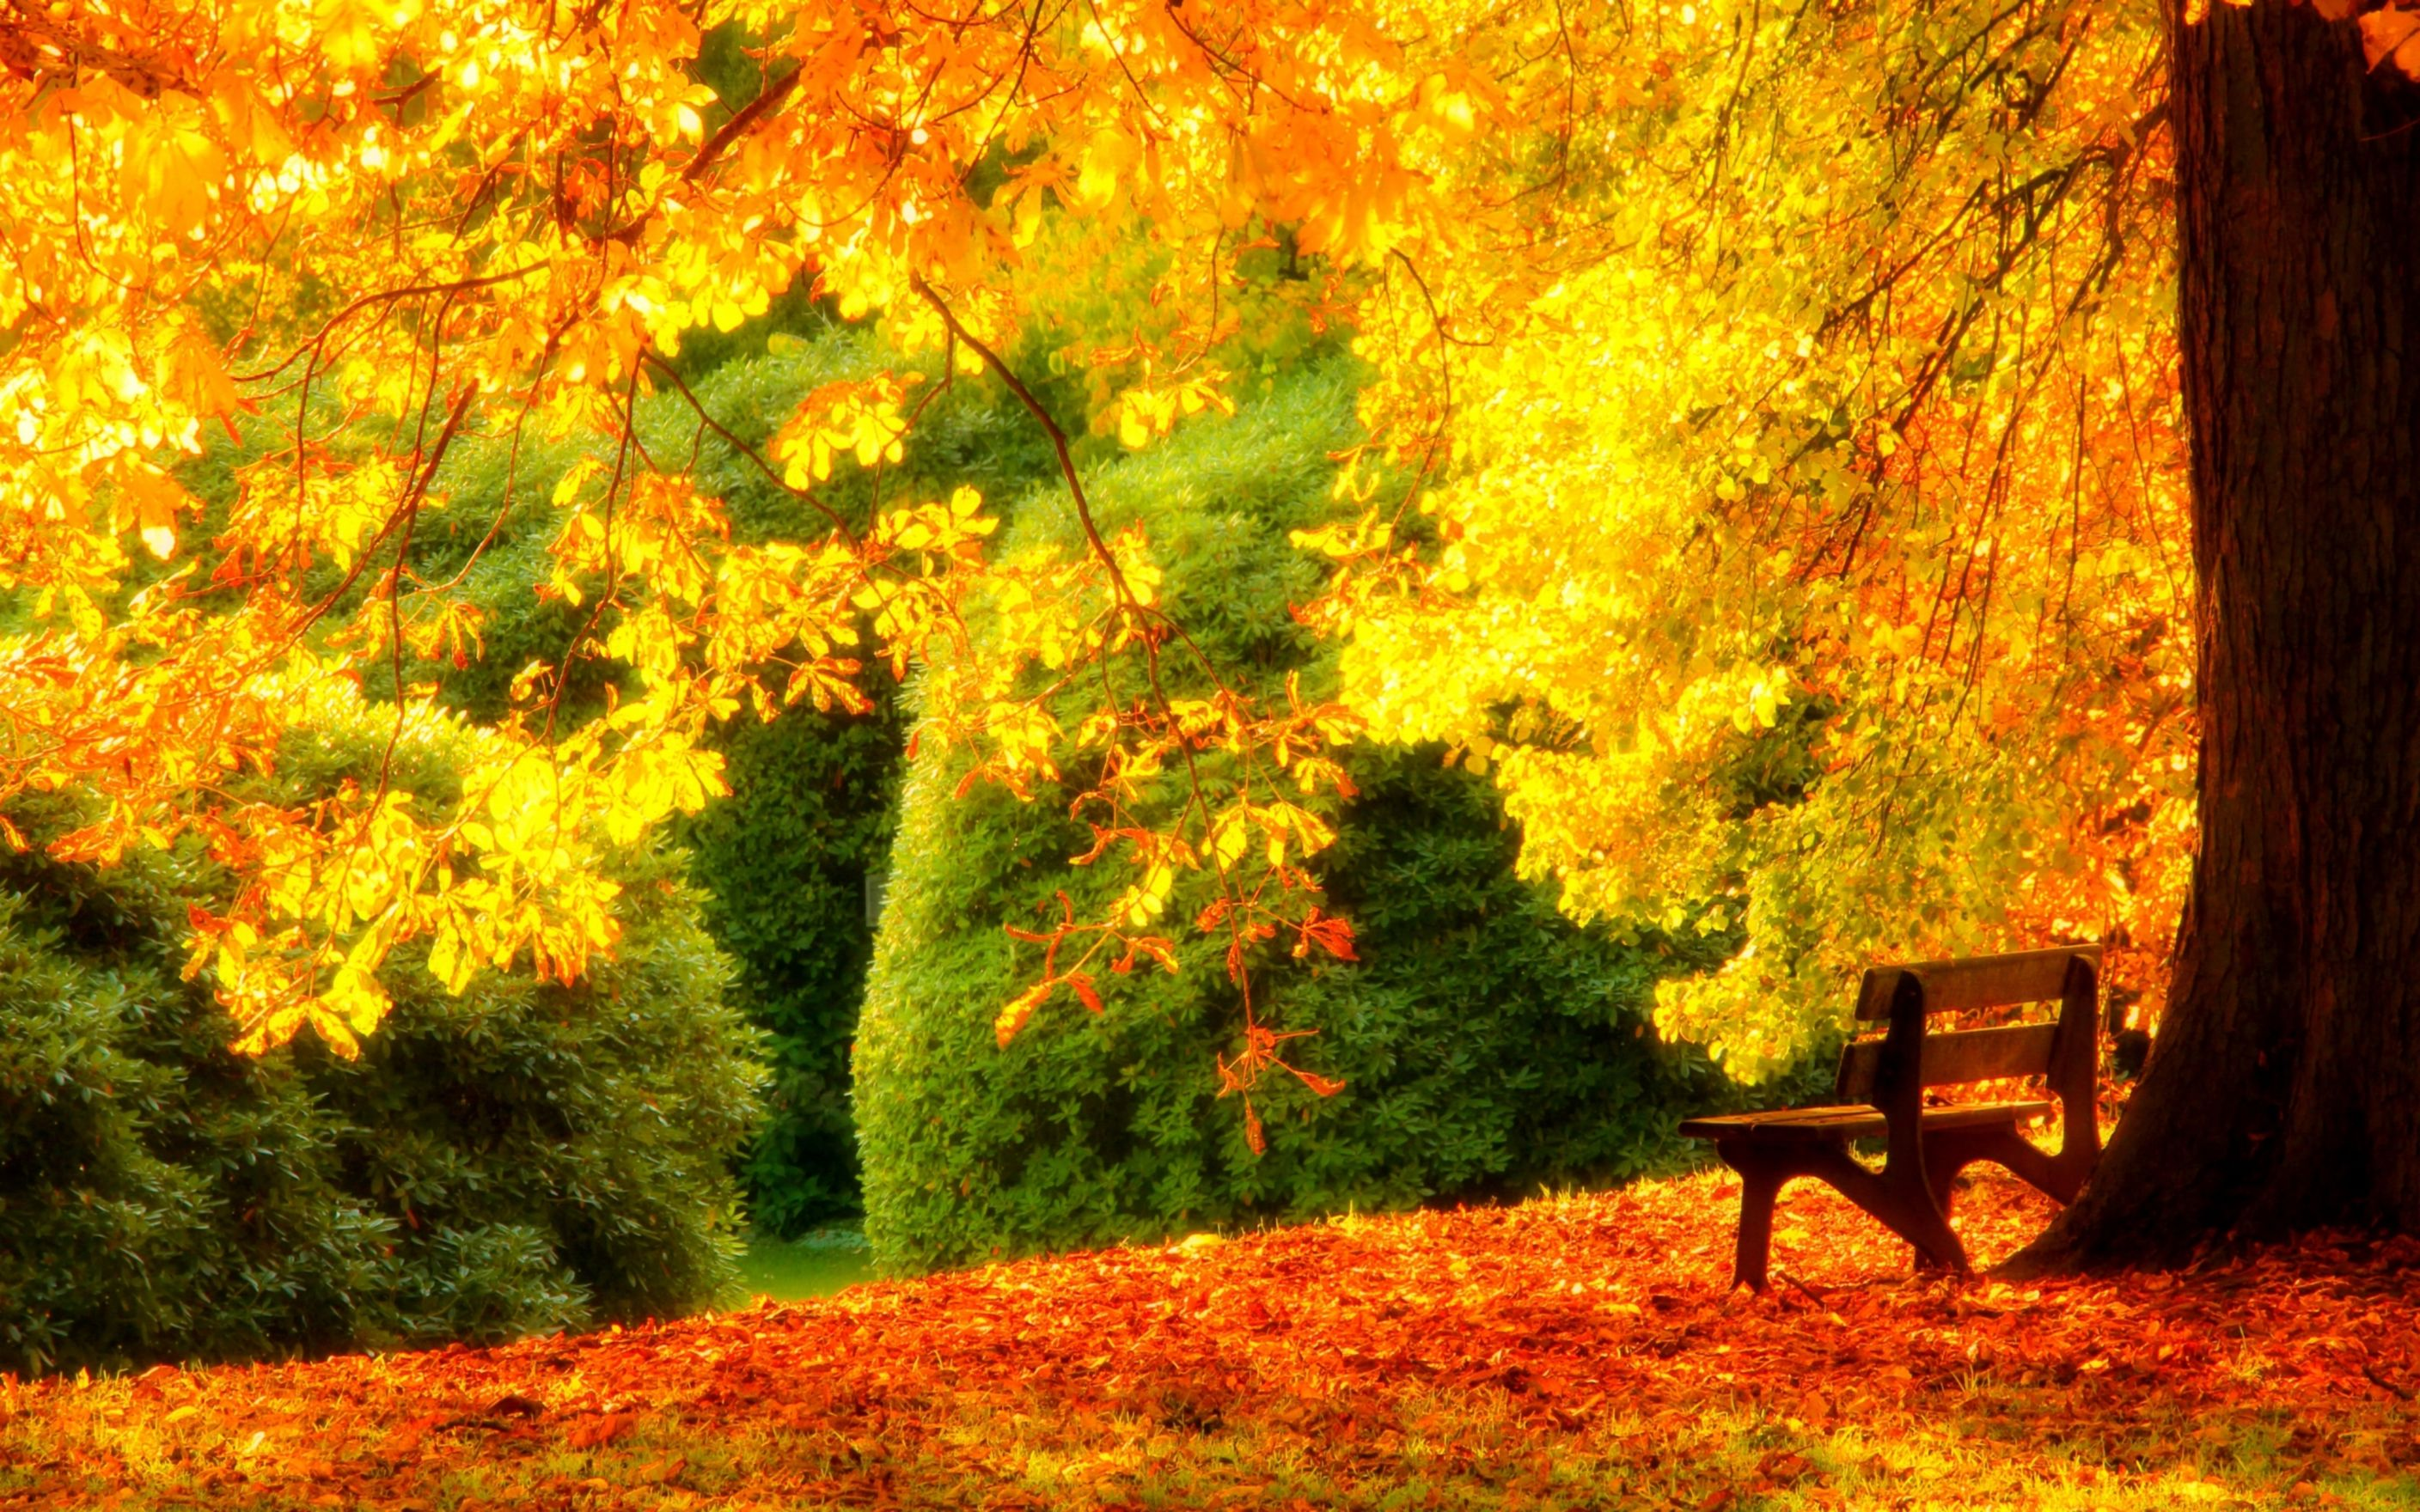 Download free HD Bench Under Spectacular Yellow Tree Wallpaper, image